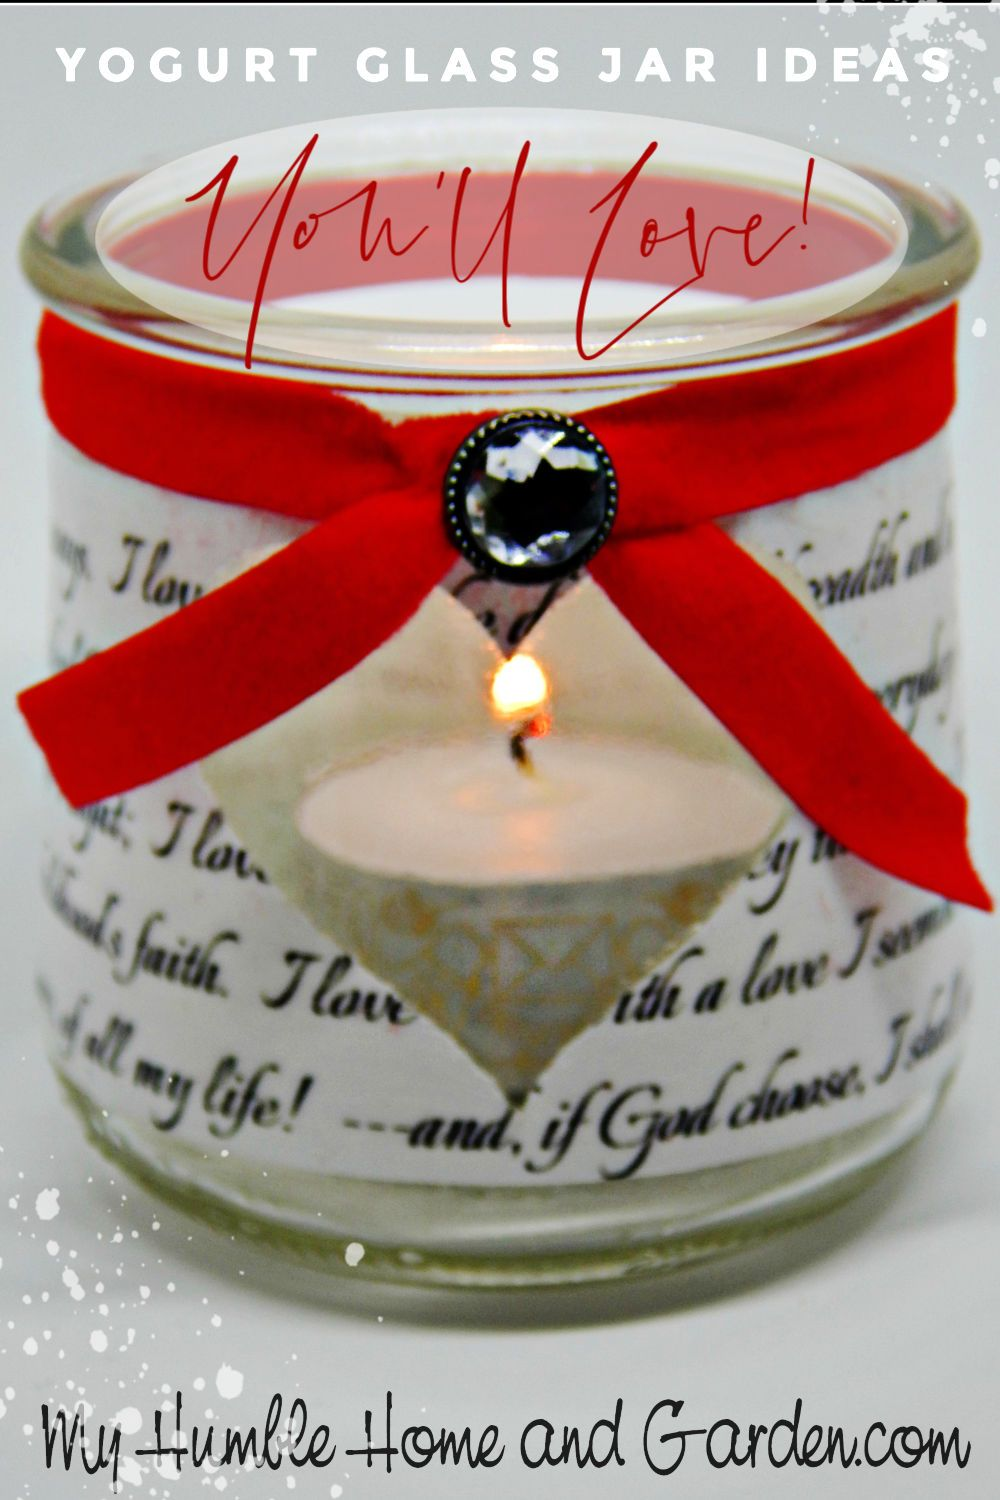 Yogurt Glass Jar Ideas You Ll Love For Valentine S Day My Humble Home And Garden Glass Jars Jar Diy And Crafts Sewing